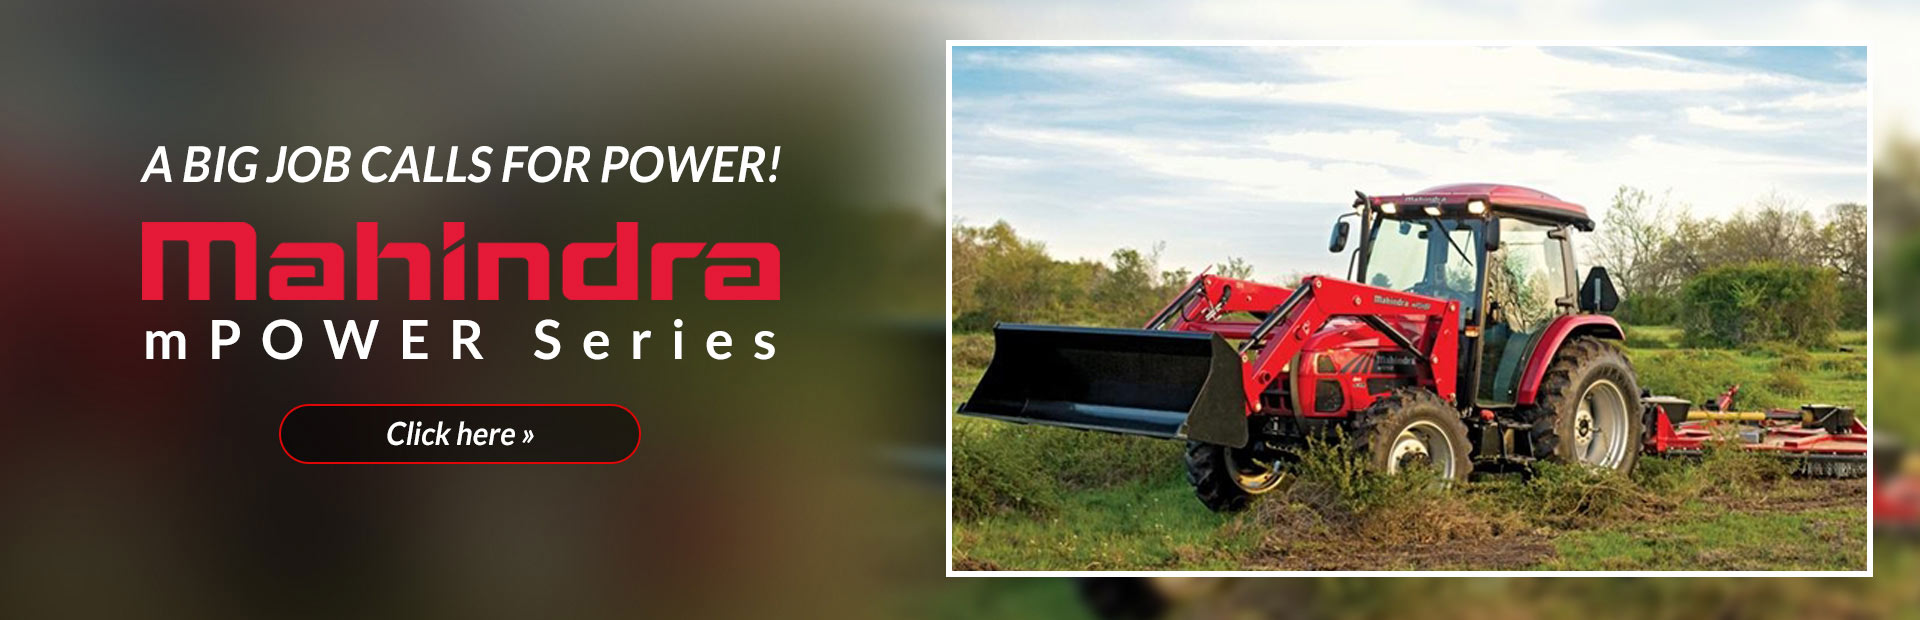 Click here to view the Mahindra mPOWER series tractors!